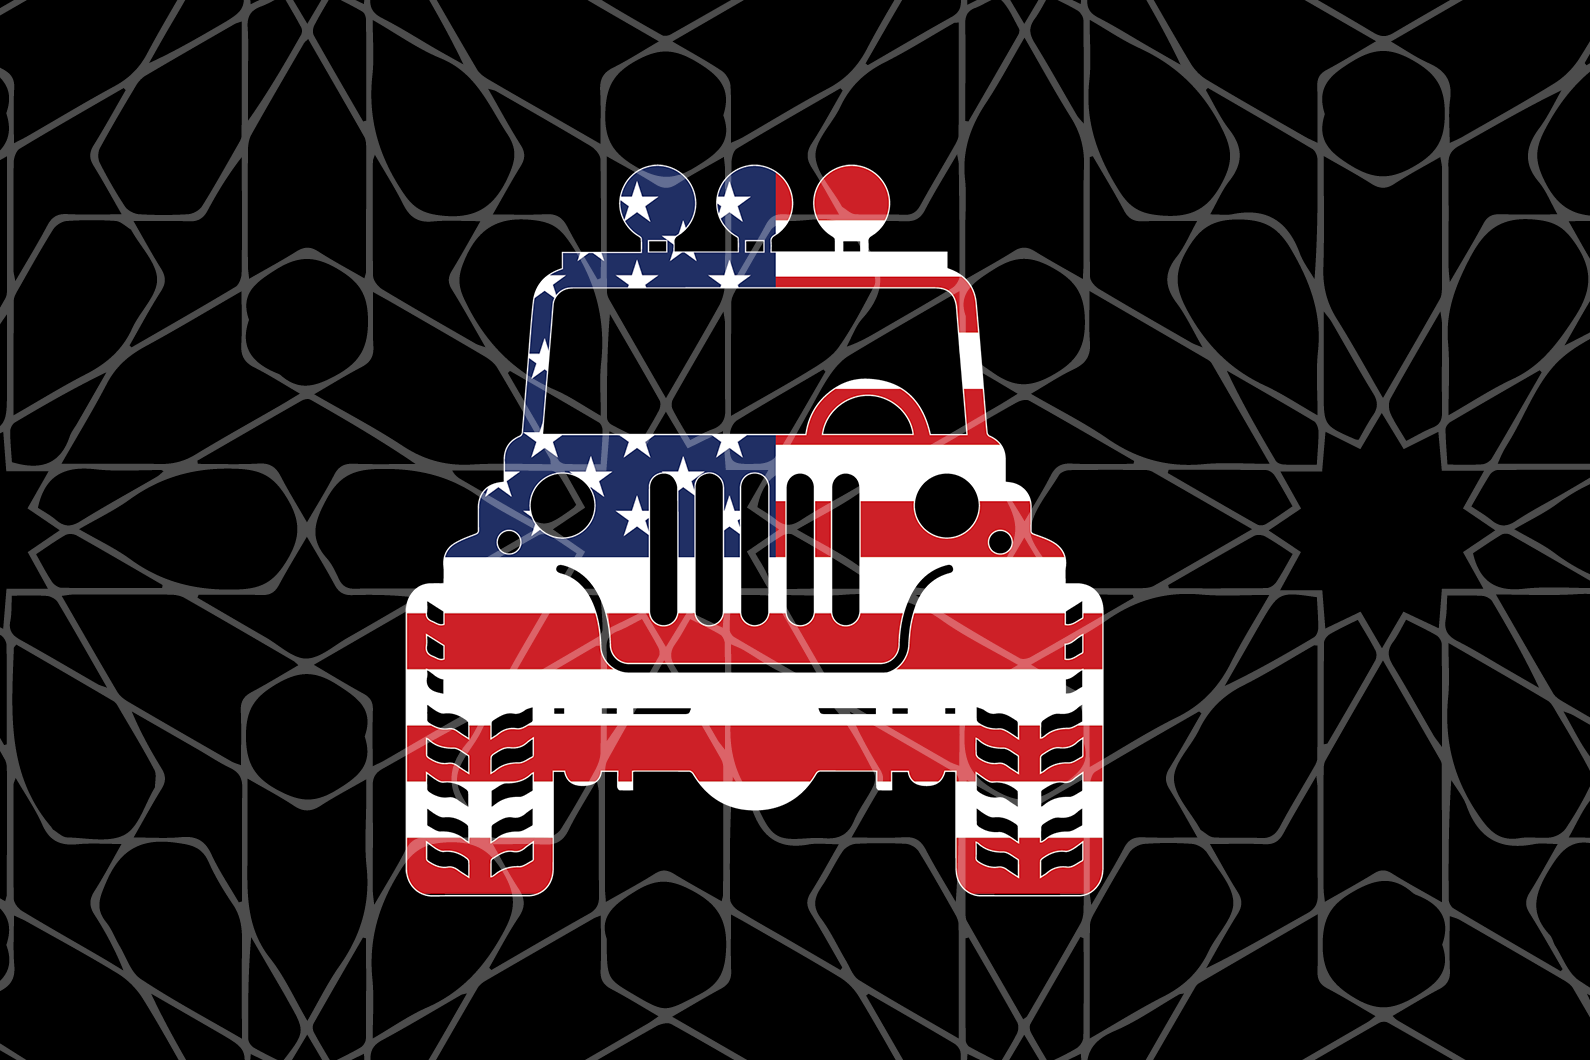 American jeep flag SVG,SVG Files For Silhouette, Files For Cricut, SVG, DXF, EPS, PNG Instant Download